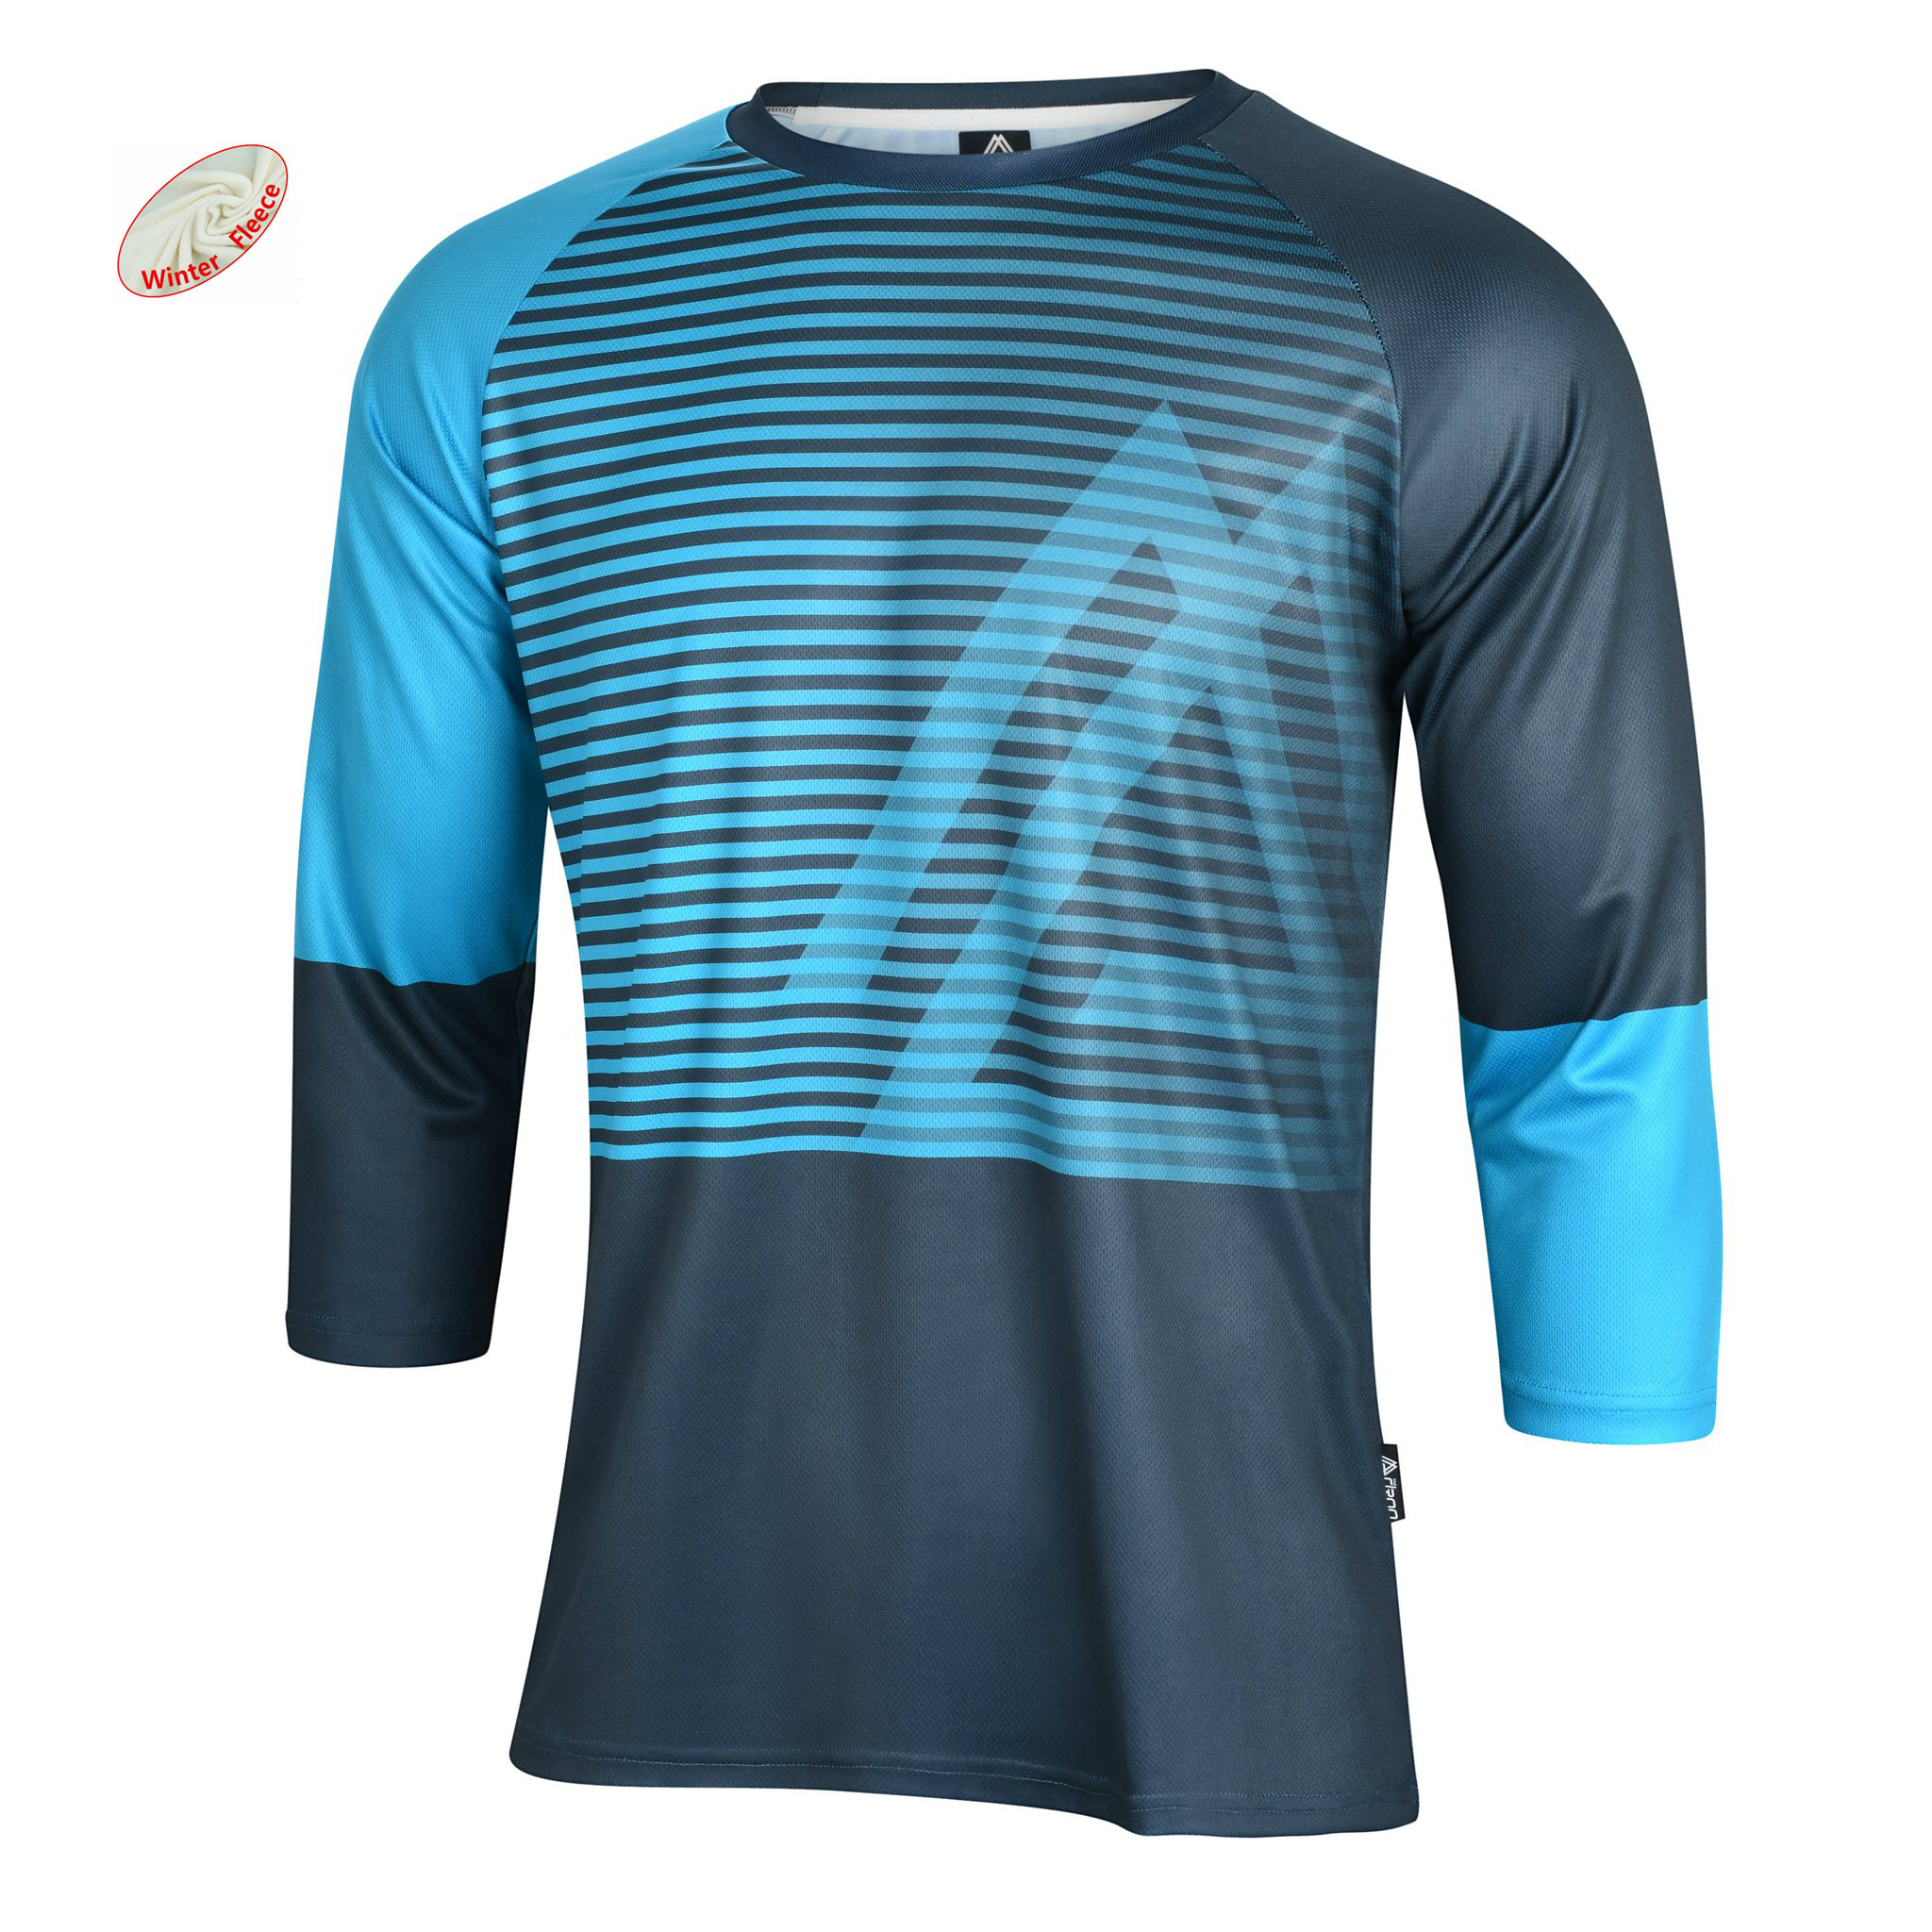 a0ad1af5c Detail Feedback Questions about 2019 Winter MTB Cycling Jerseys Moto Jersey  Downhill Jersey Motocross Motorcycle Mountain Bike MX DH MTB Jerseys Moto  Shirt ...